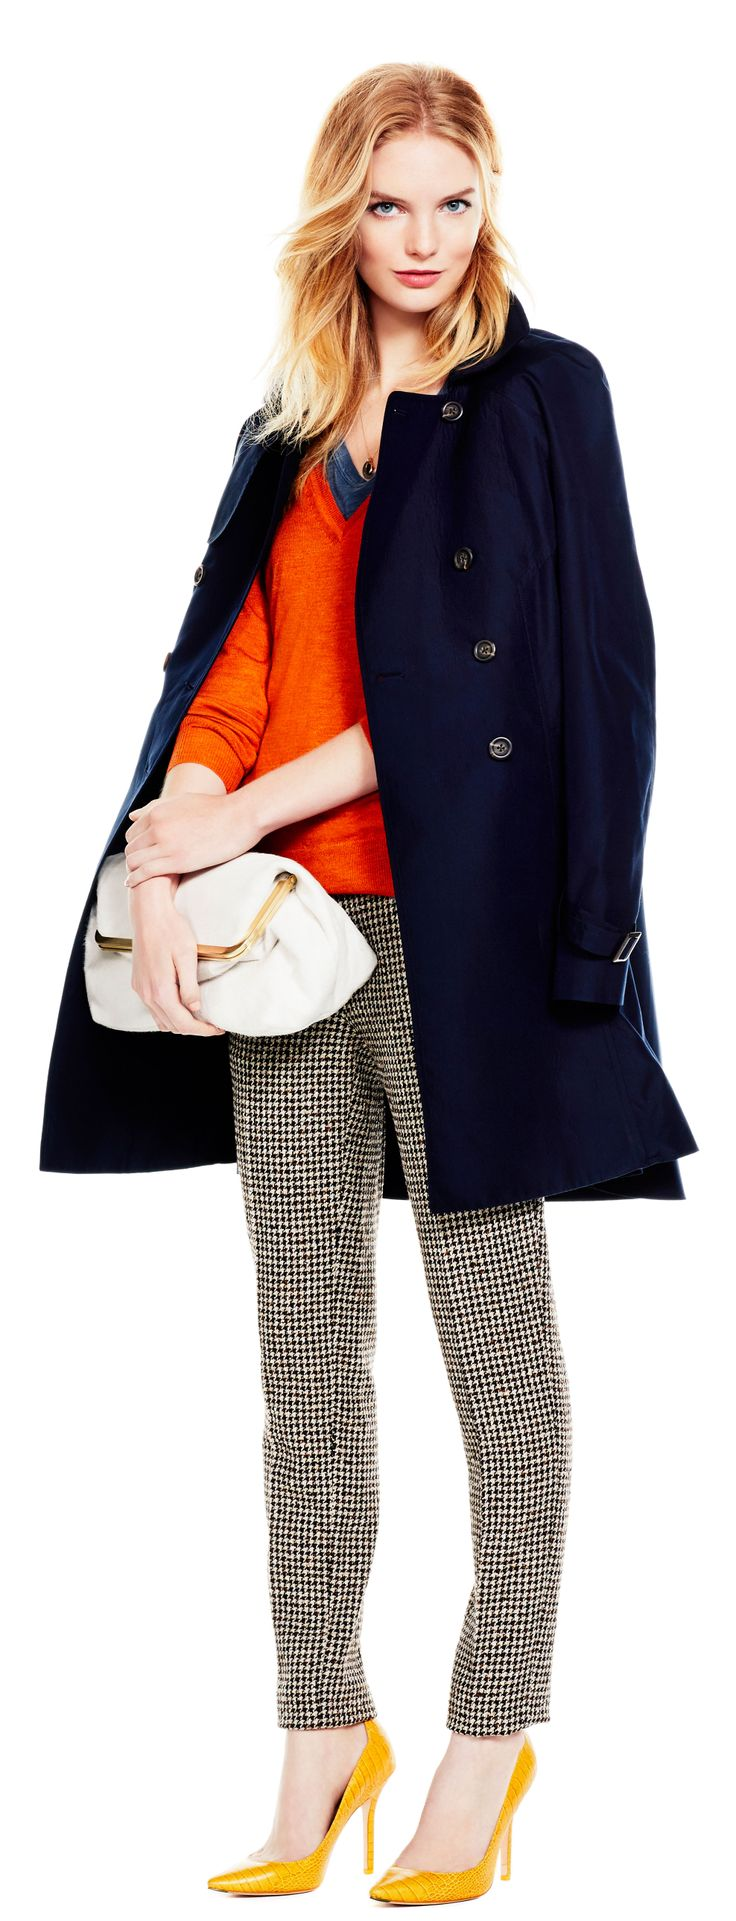 Navy and houndstooth.: Whowhatwearcom, Outfit Ideas, Navy Coats, Style, Whowhatwear Com, Marines Layered, Fall Layered, Fall Fashion, Navy Peacoats